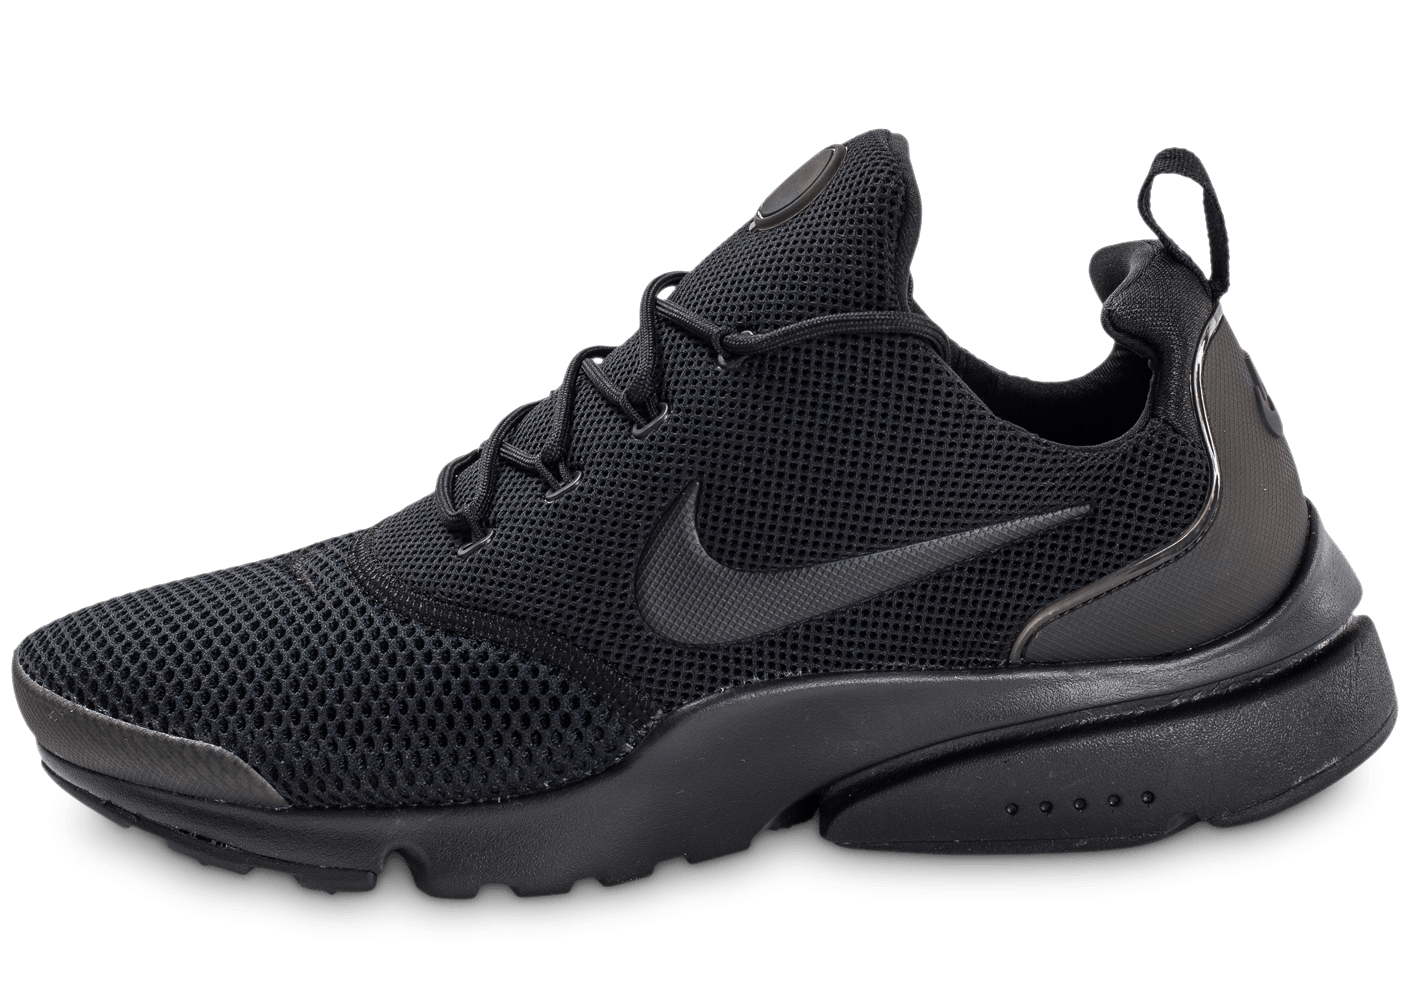 nike presto fly triple noir chaussures homme chausport. Black Bedroom Furniture Sets. Home Design Ideas